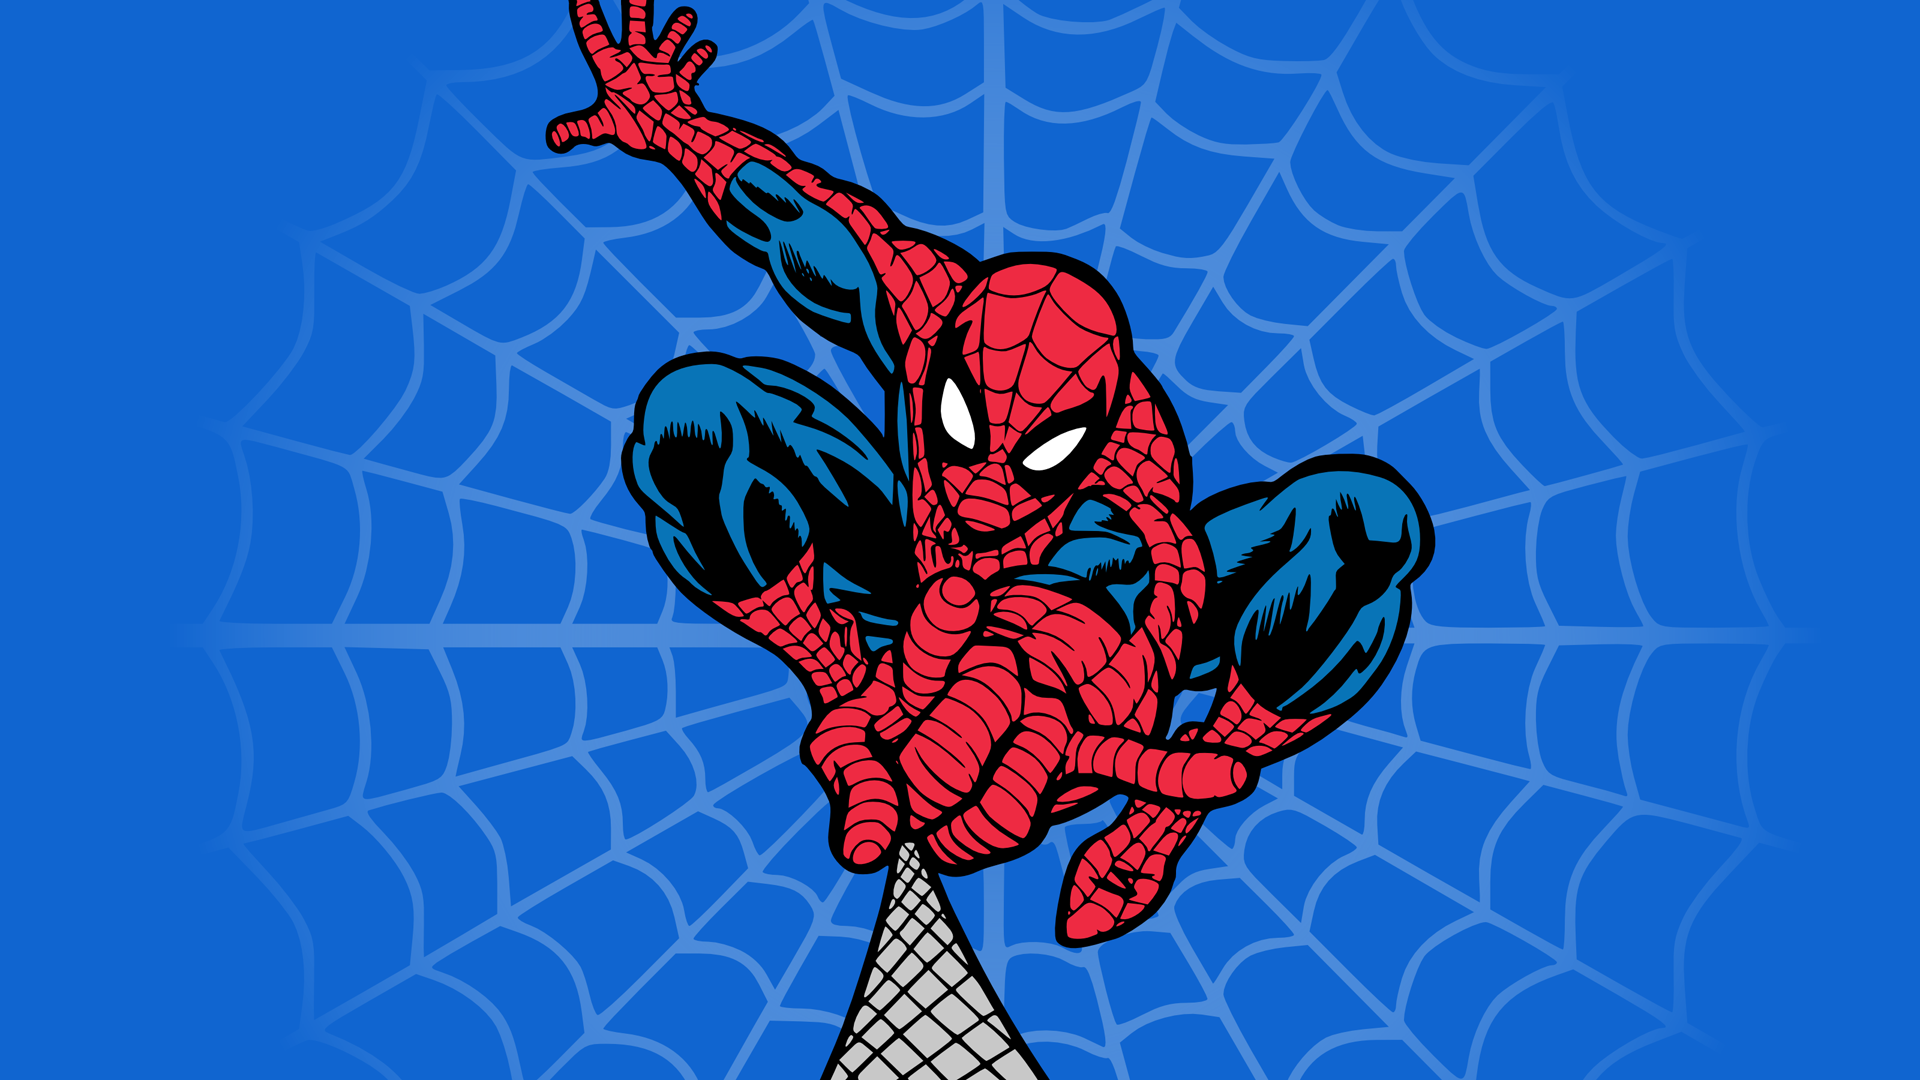 Spiderman Hd Wallpaper 1920x1080 Wallpapersafari